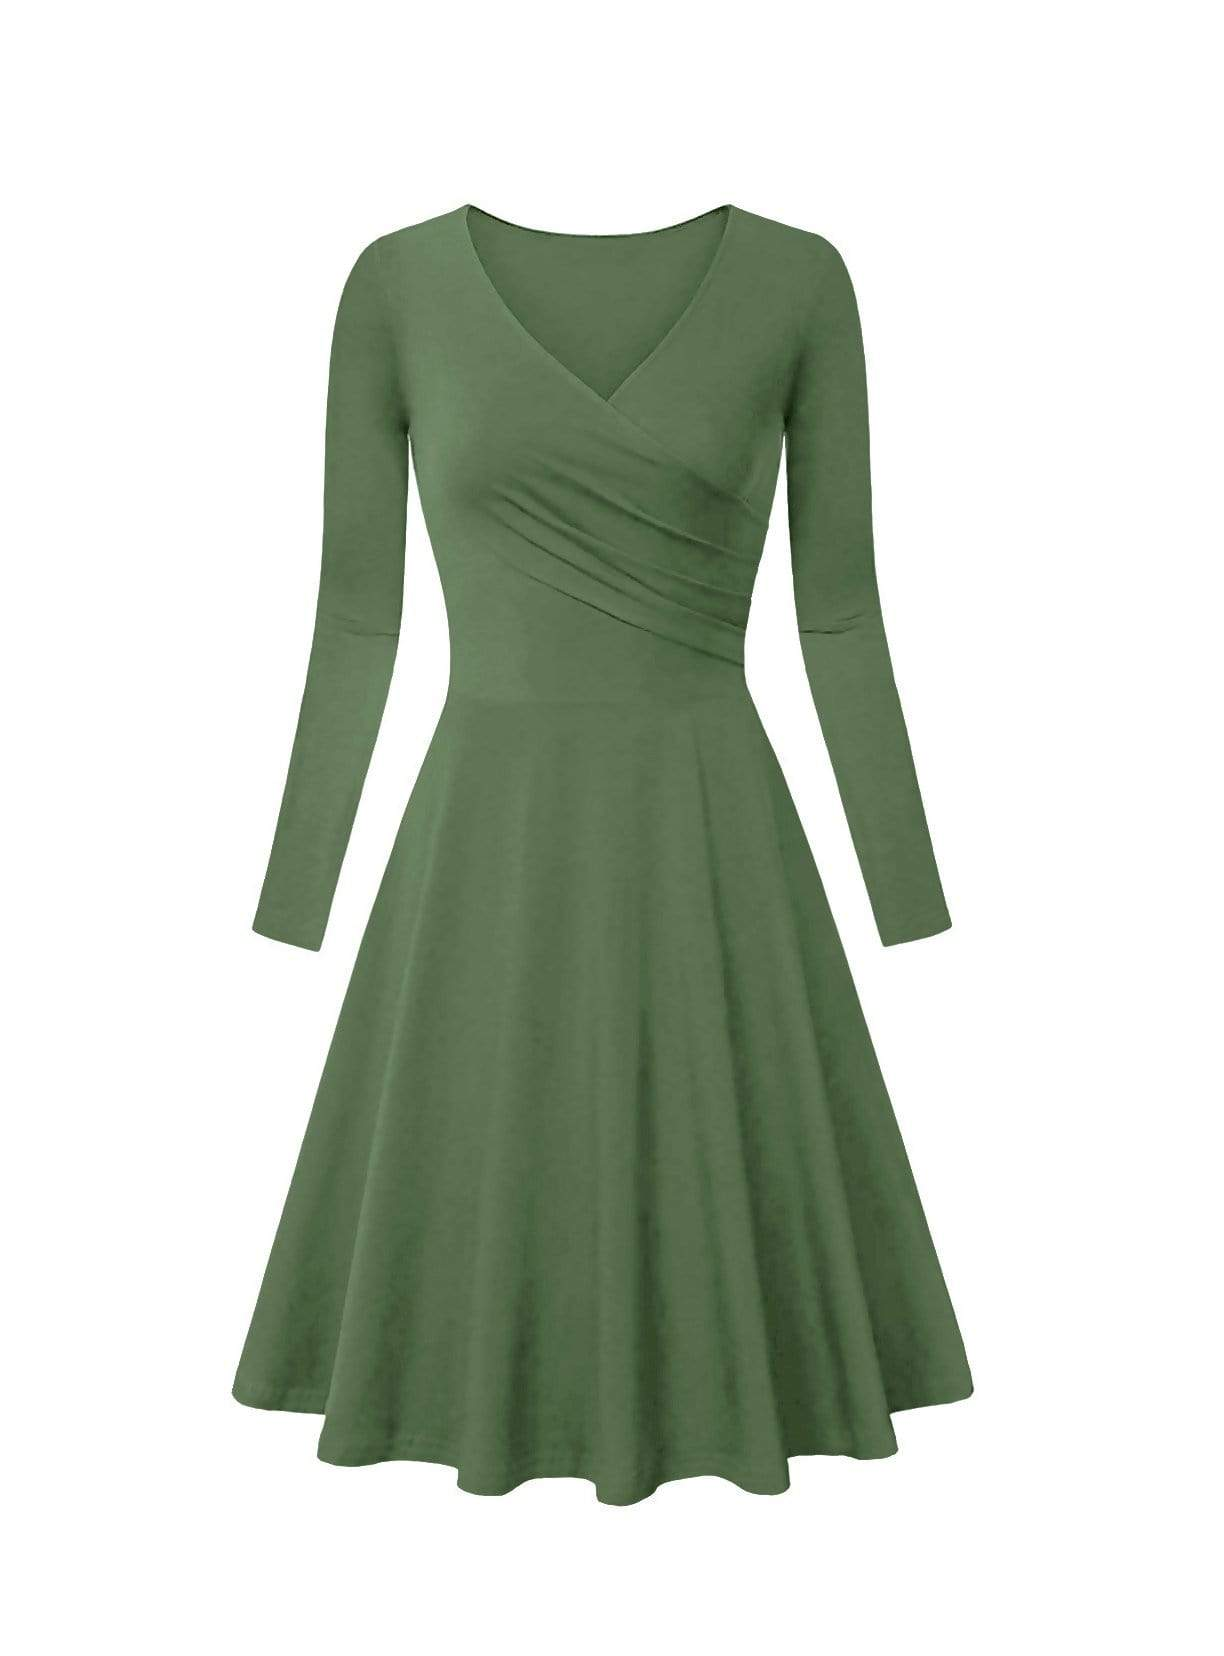 DAILYHAUTE Women's dress OLIVE / S Haute Edition Women's V-Neck Long Sleeve Skater Dress